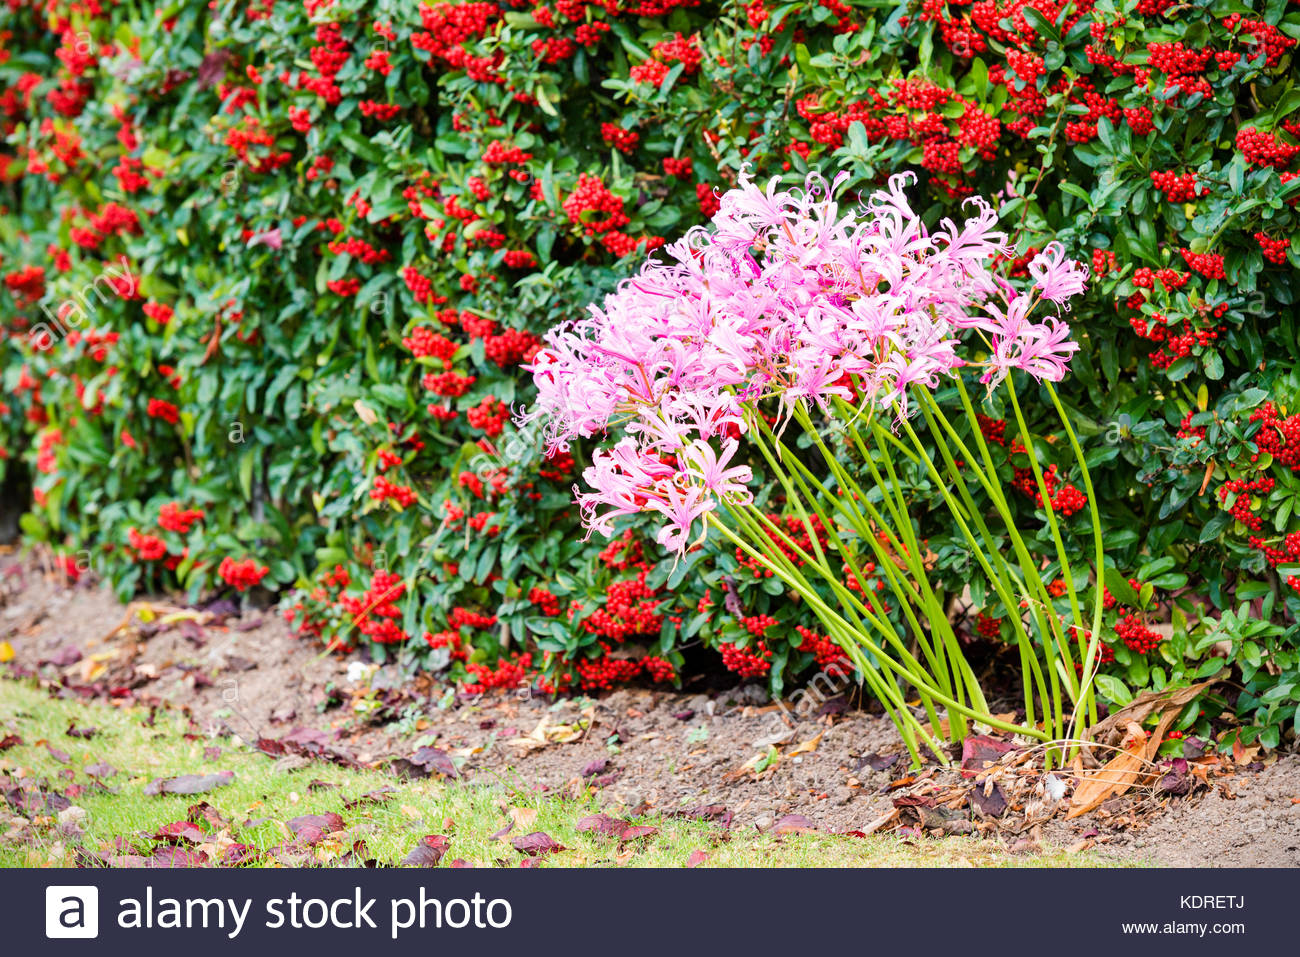 Nerine bowdenii flowers in a clump in the garden, protected by a hedge with red berries, UK. - Stock Image